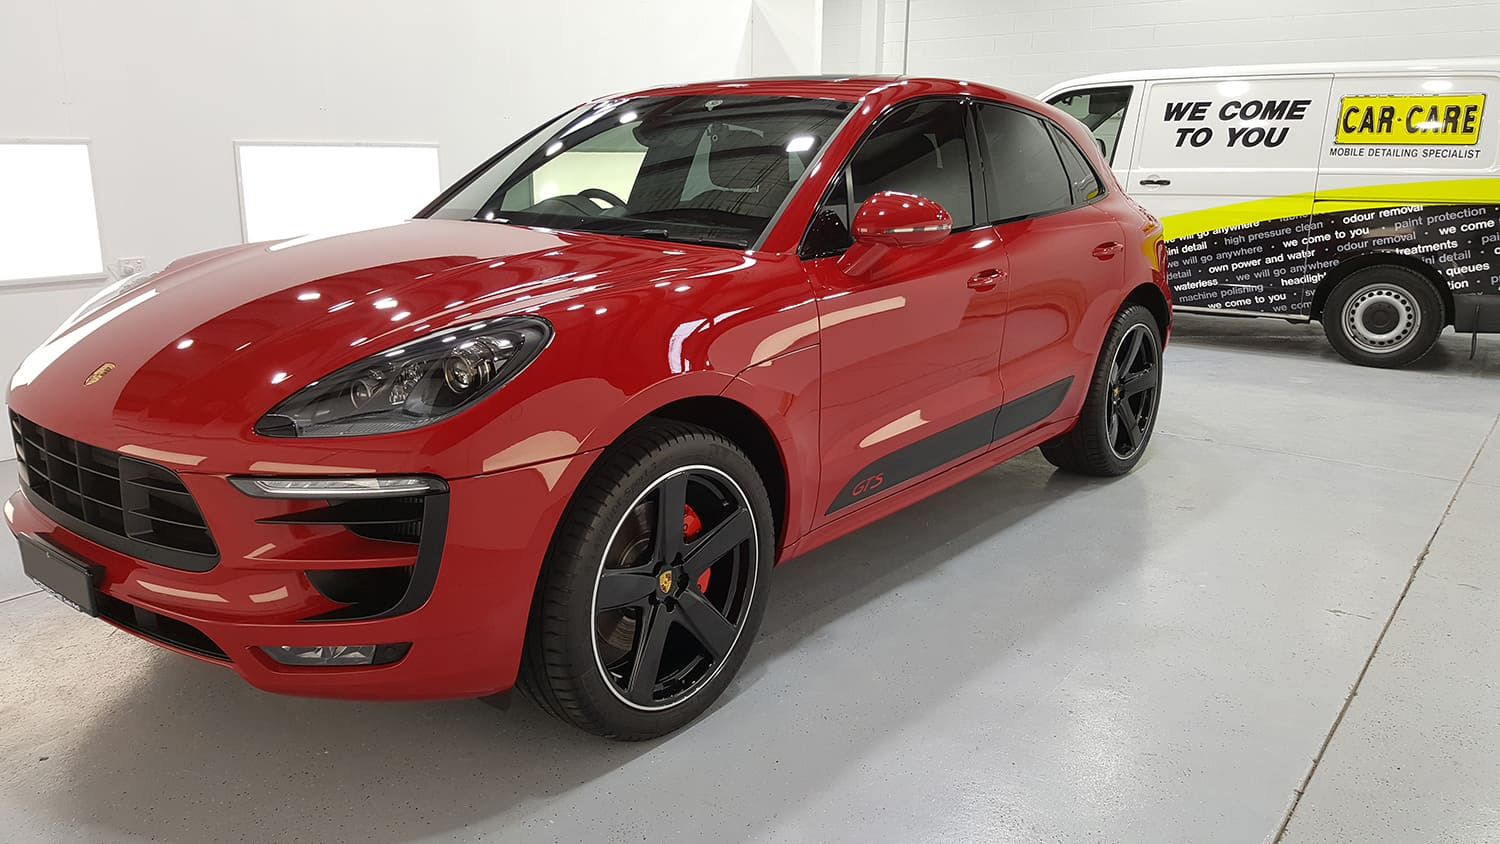 A freshly cleaned Red Porsche Macan S, that has had a full car detailing service on it, in a showroom